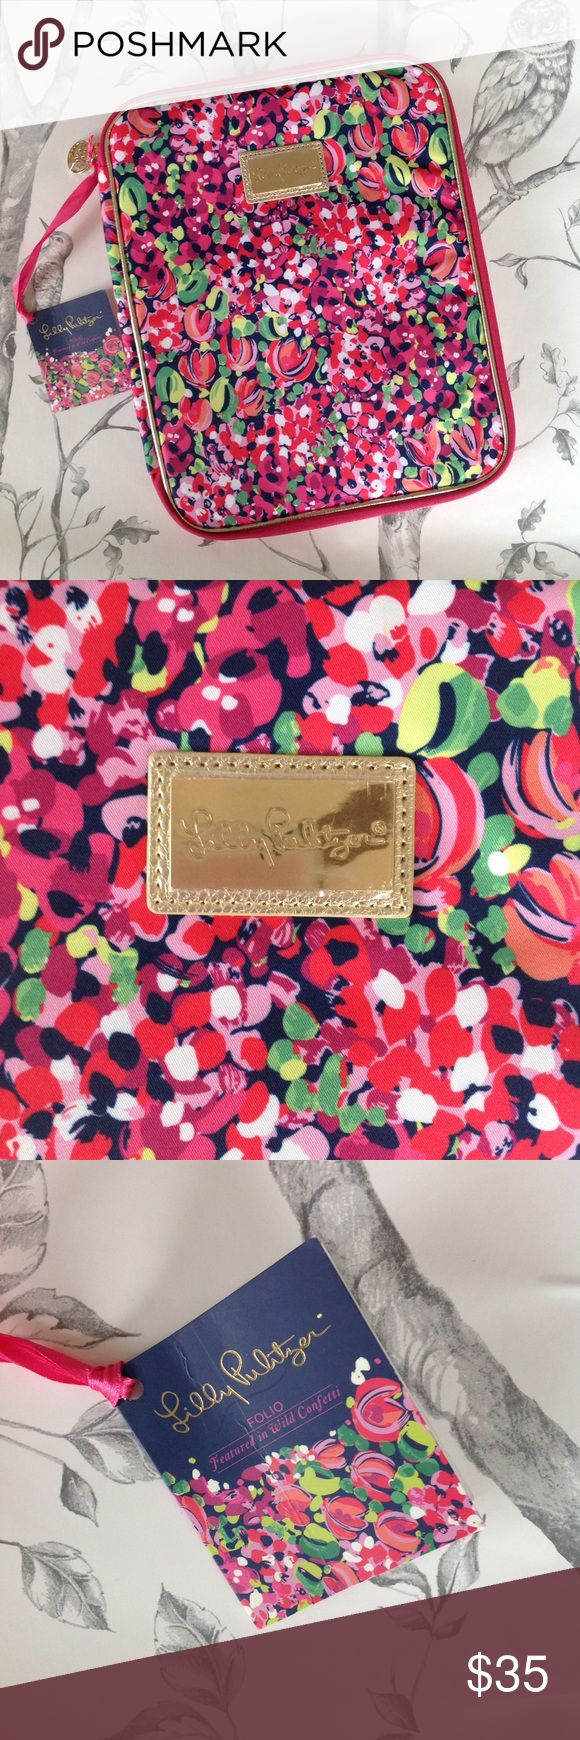 Lily Pulitzer Agenda Folio Wild Confetti Lo and behold this gorgeous NWT Lily Pulitzer Agenda Folio! Perfect for keeping track of your busy, hectic life with eight (count 'em EIGHT!) interior pockets and it has the ability to hold ANY Lily agenda. Feeling bummed? No worries! This Wild Confetti print complete with gold hardware accents is sure to brighten even Eeyore's day! So up your neat-freak game and give this folio a look! Price firm. Lilly Pulitzer Accessories